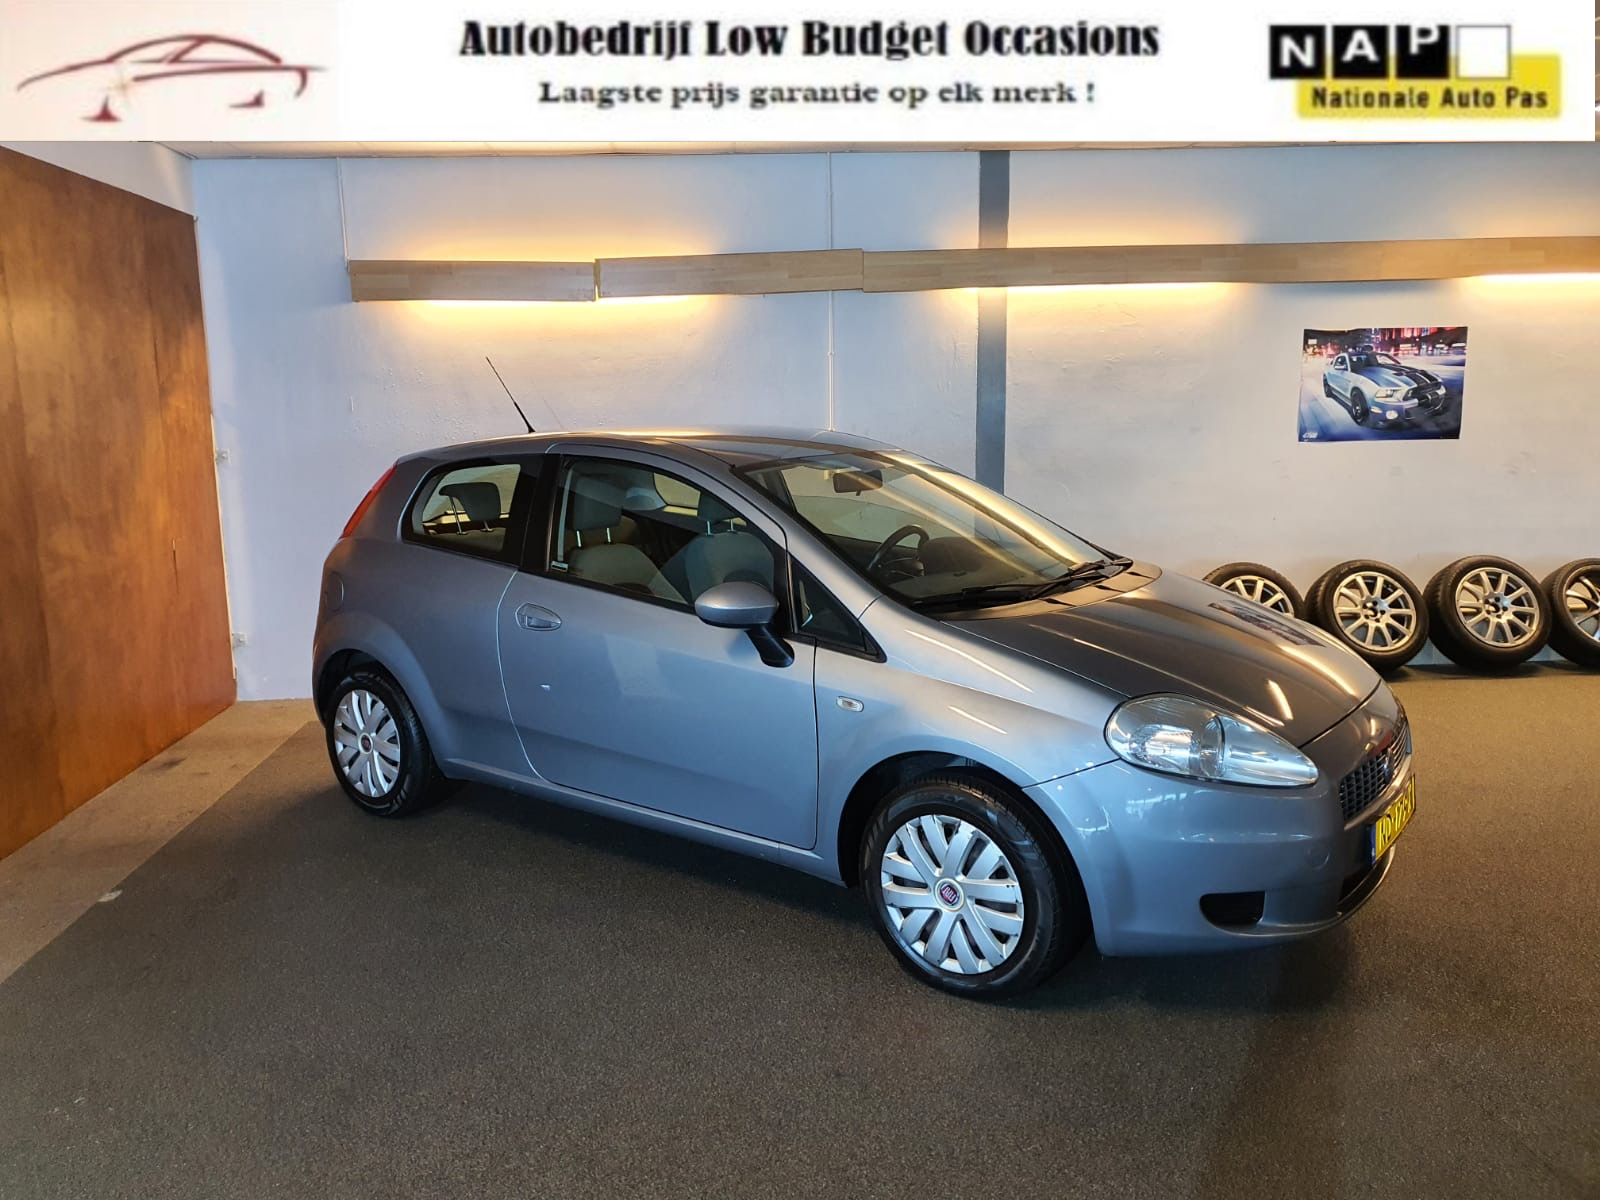 Fiat Grande Punto occasion - Low Budget Occasions